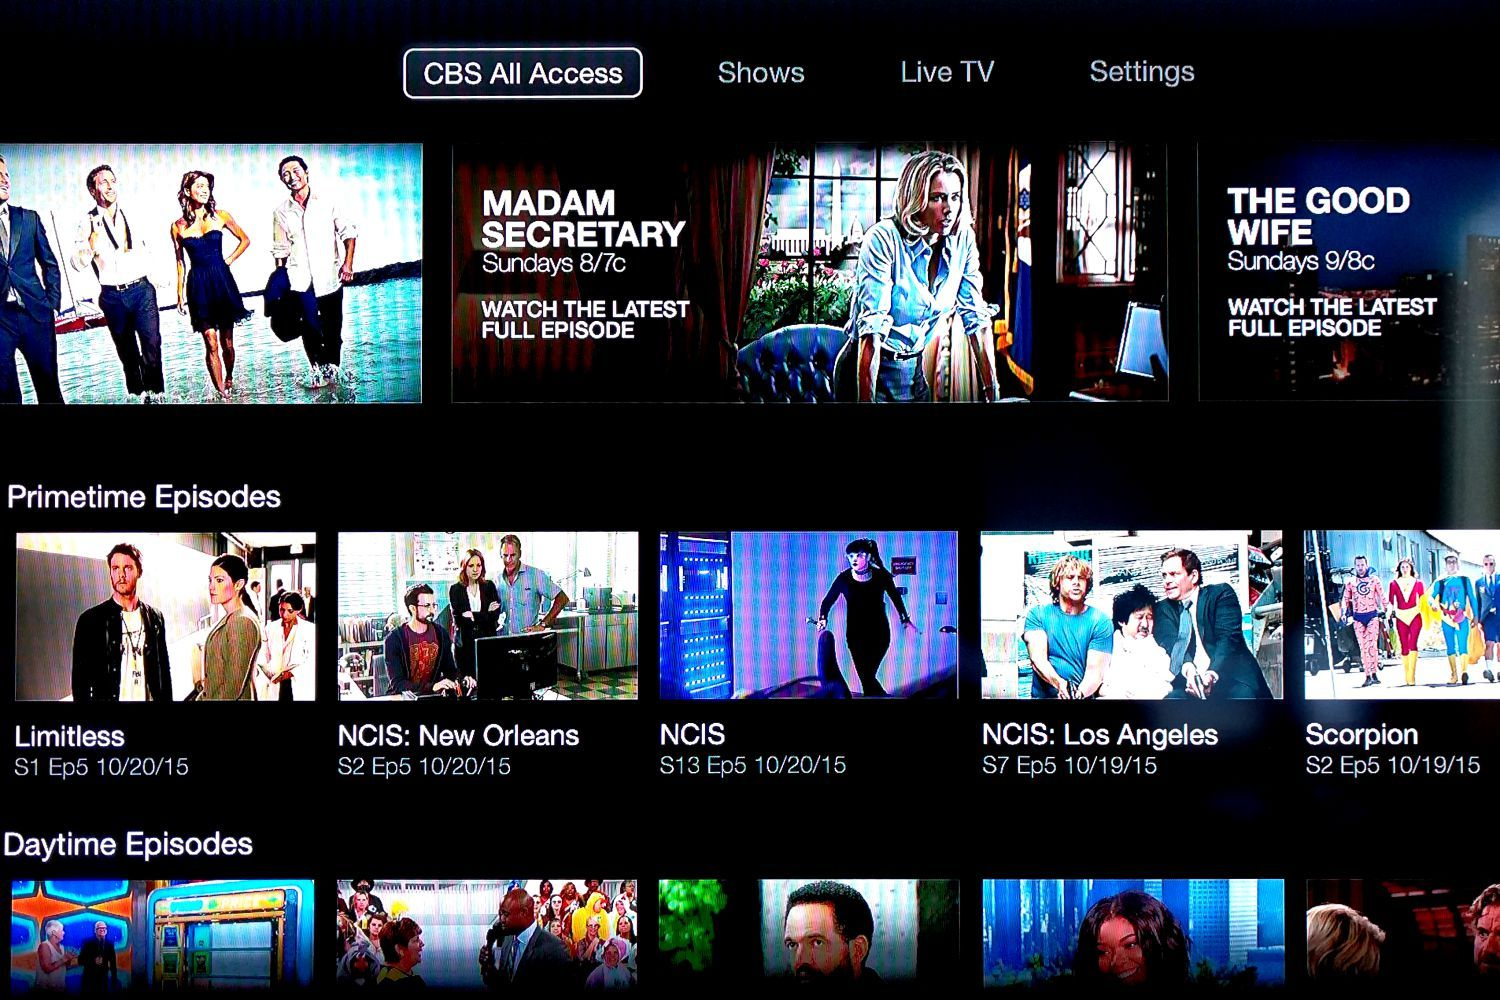 NBC and CBS All Access arrive on Apple TV (yes, the old one